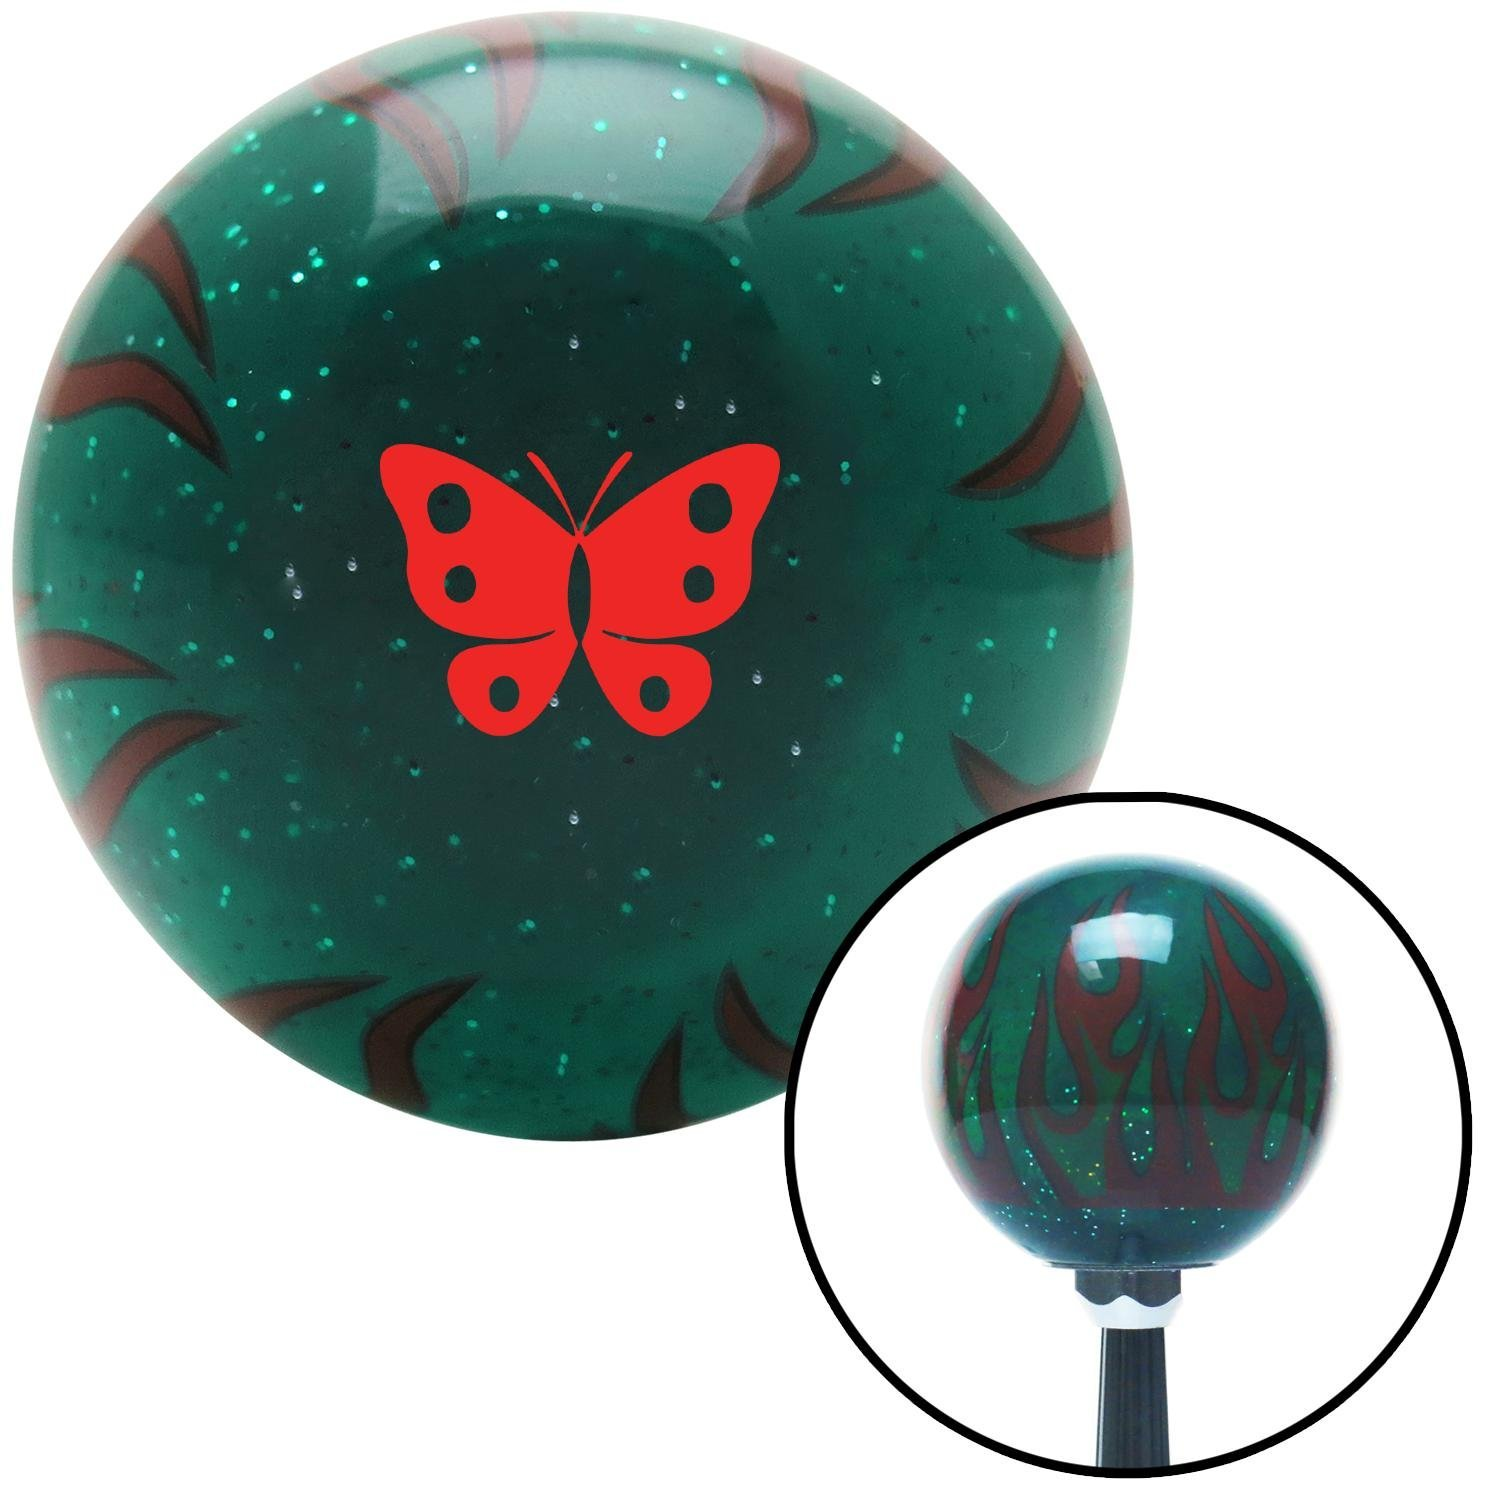 American Shifter 299856 Shift Knob Red Classic Butterfly Green Flame Metal Flake with M16 x 1.5 Insert